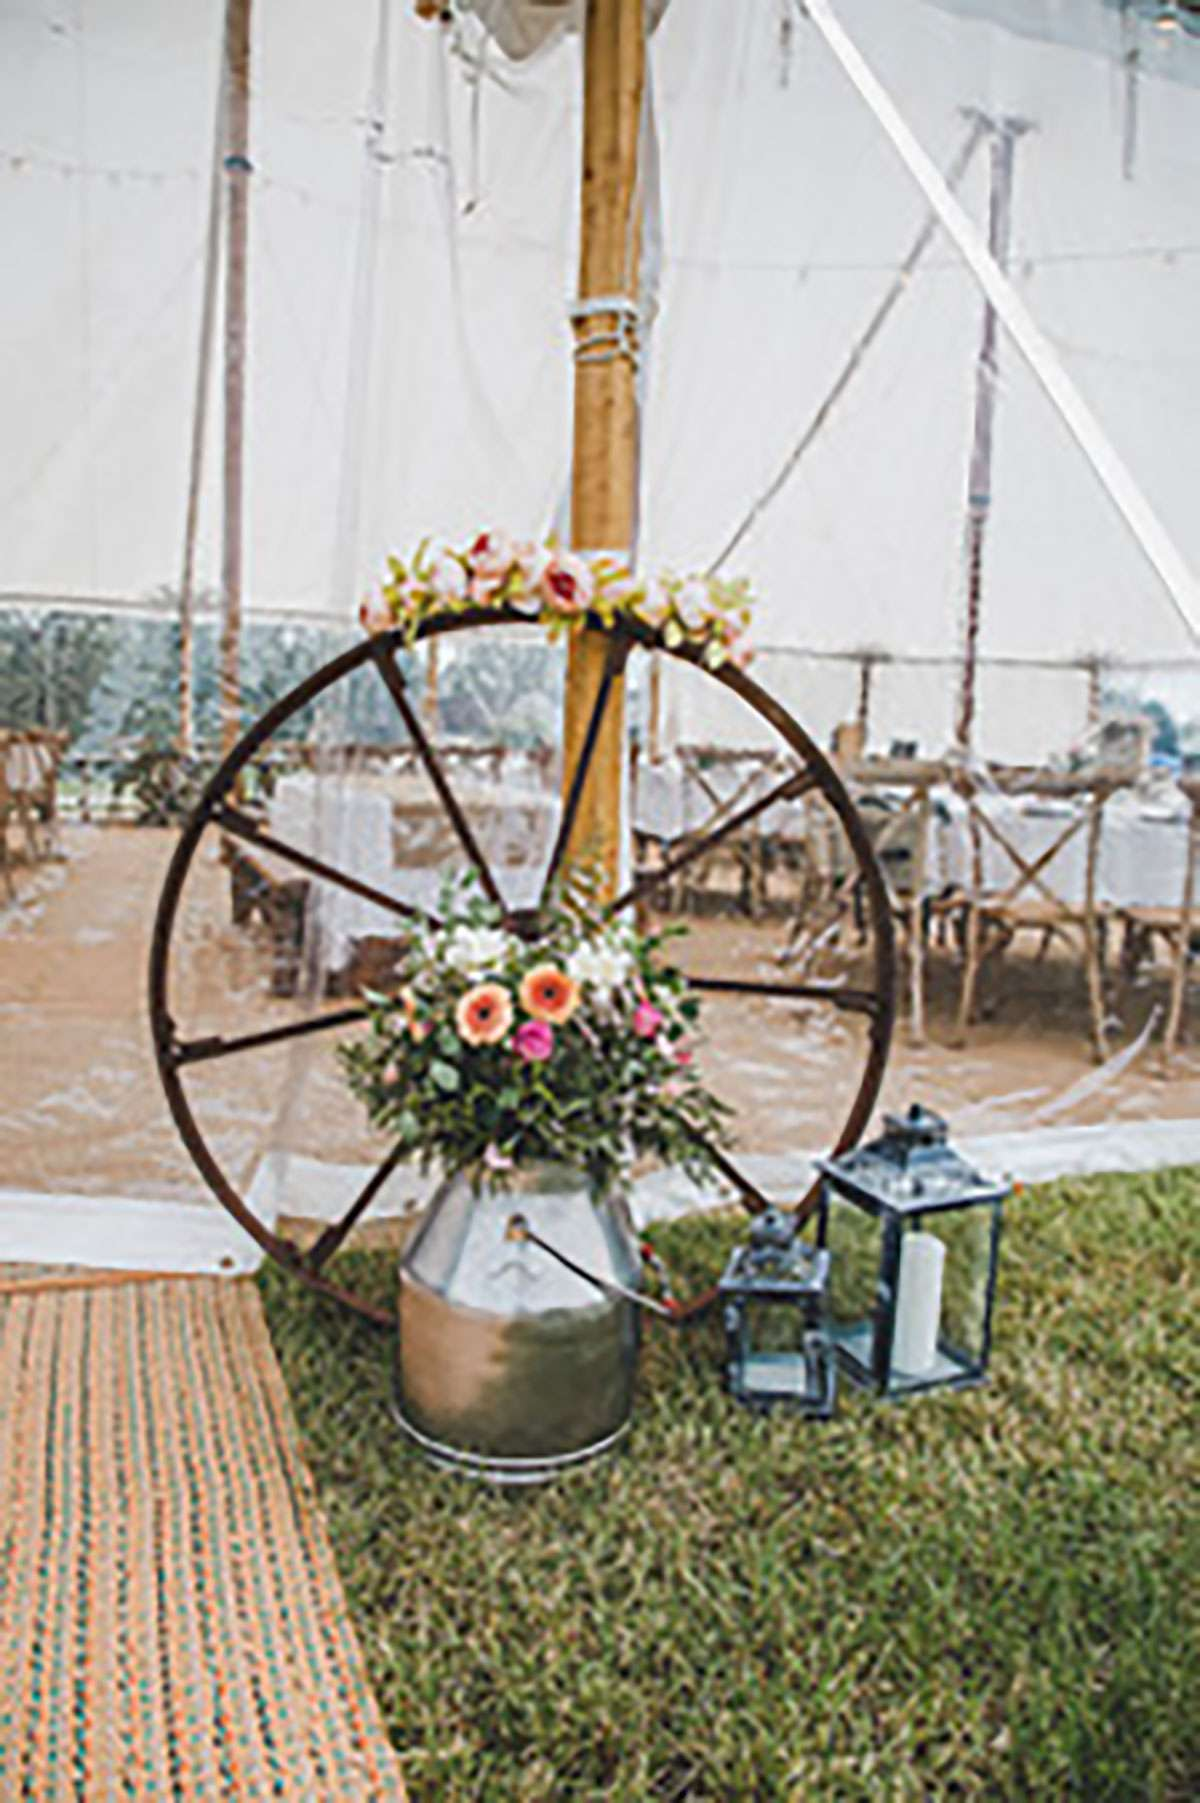 old wheel outside sailcloth tent with flowers